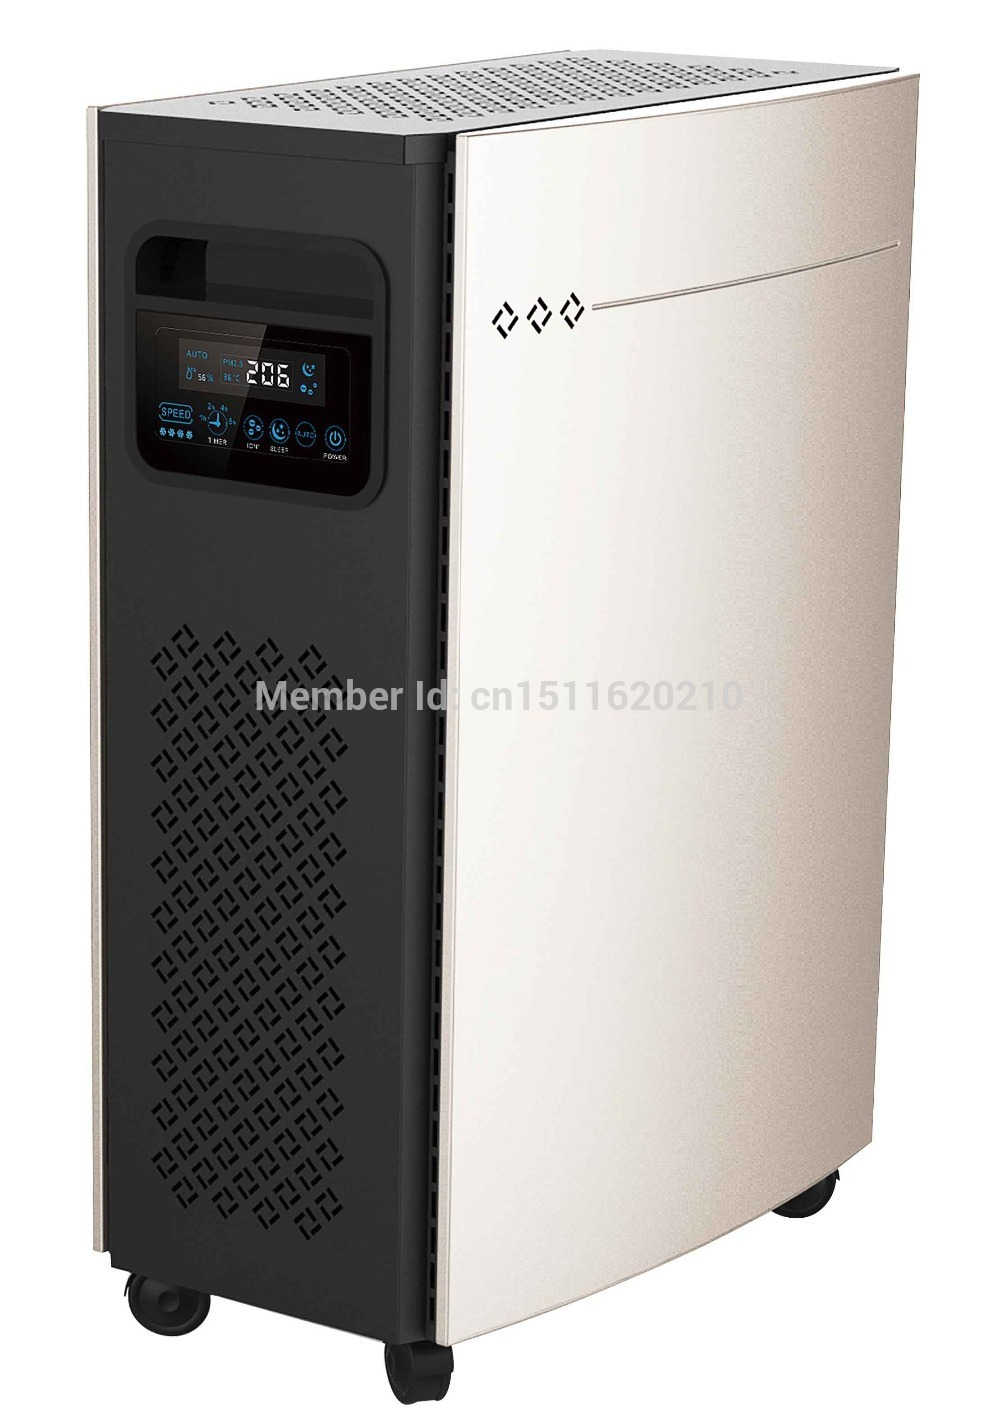 Room Air Purifier with Activated Carbon Filter, HEPA Filter and Negative Ions Output, office air purifier(China (Mainland))